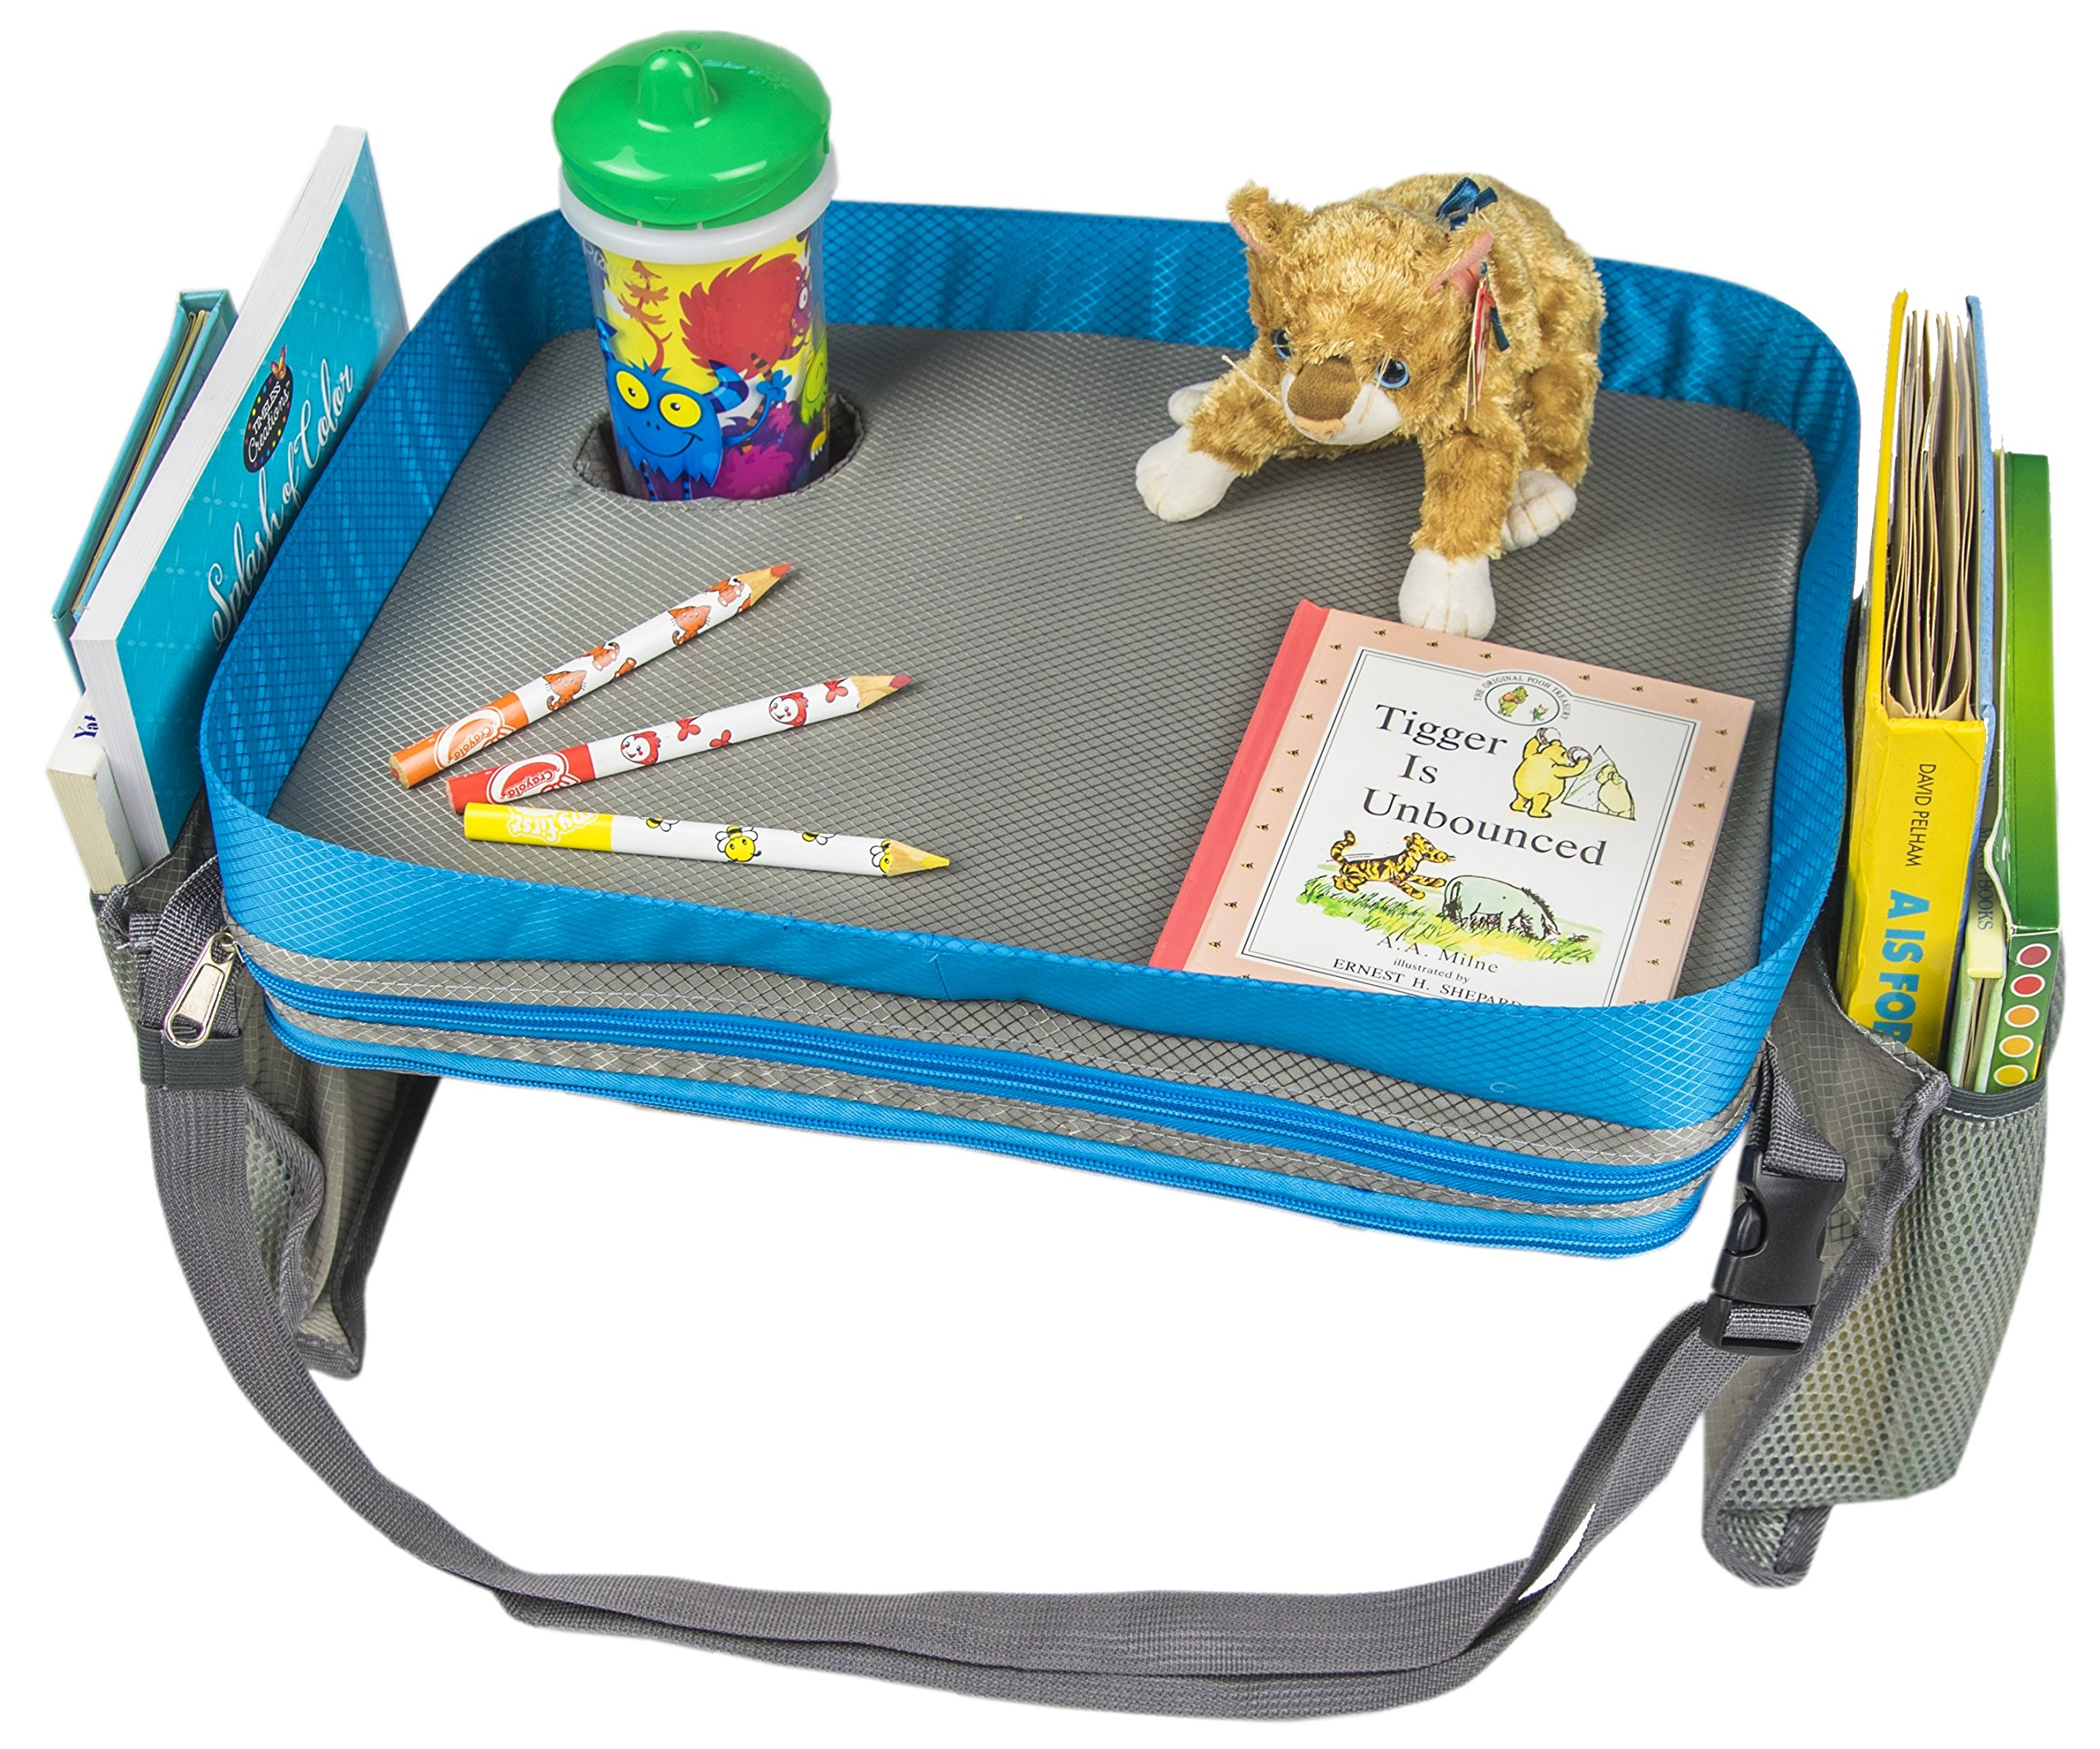 Kids Travel Activity & Snack Tray by On The Go Families | Child & Toddler Car Seat Tray | Road Trip Essential Lap Desk for Carseat, Booster, Stroller, Airplane | Waterproof & Machine Washable (Blue) by On The Go Families